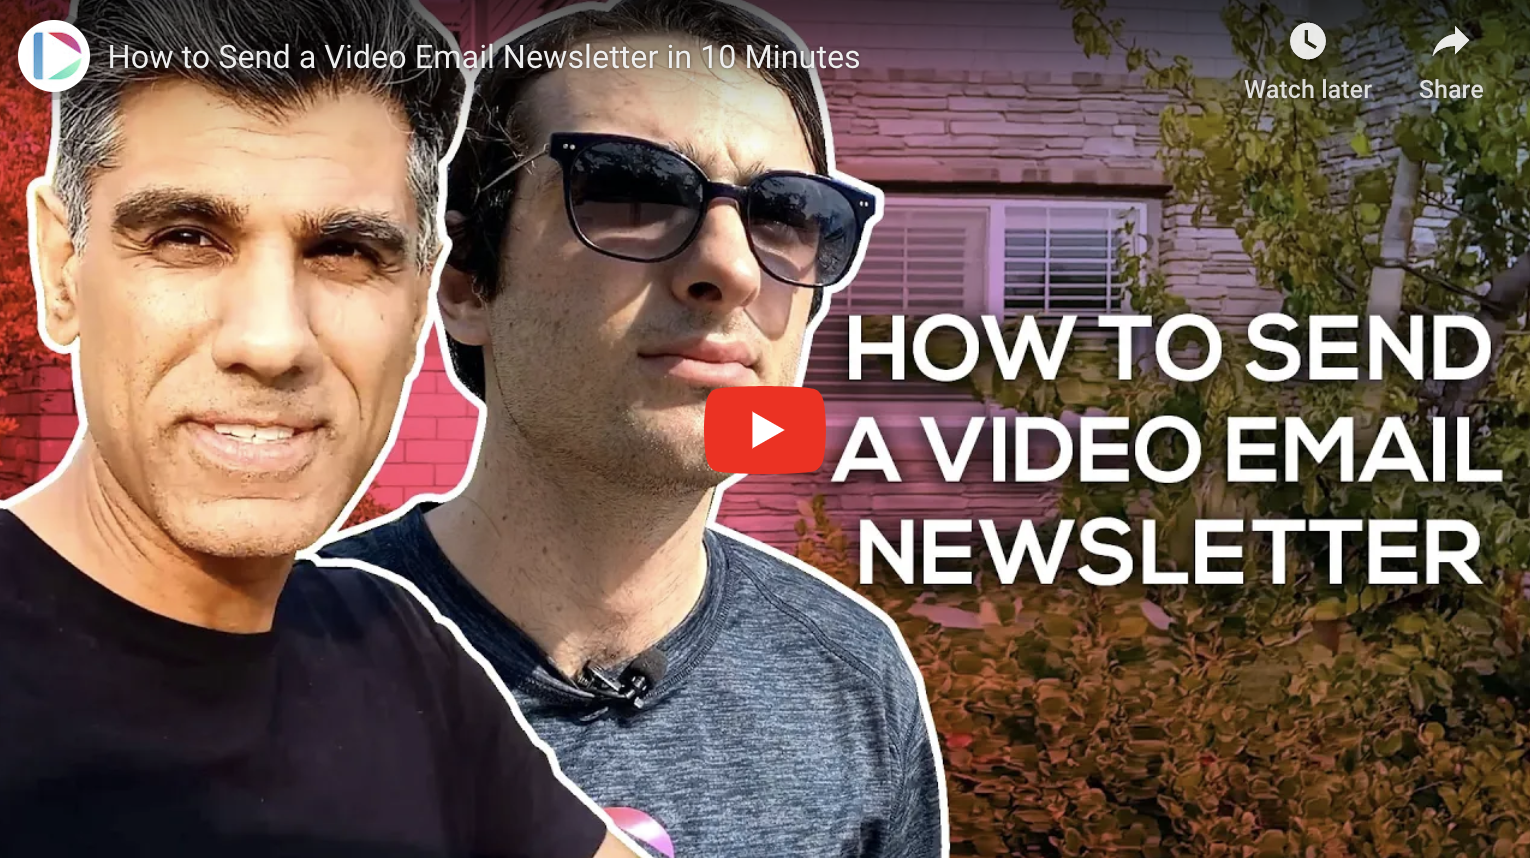 Video Email Newsletter